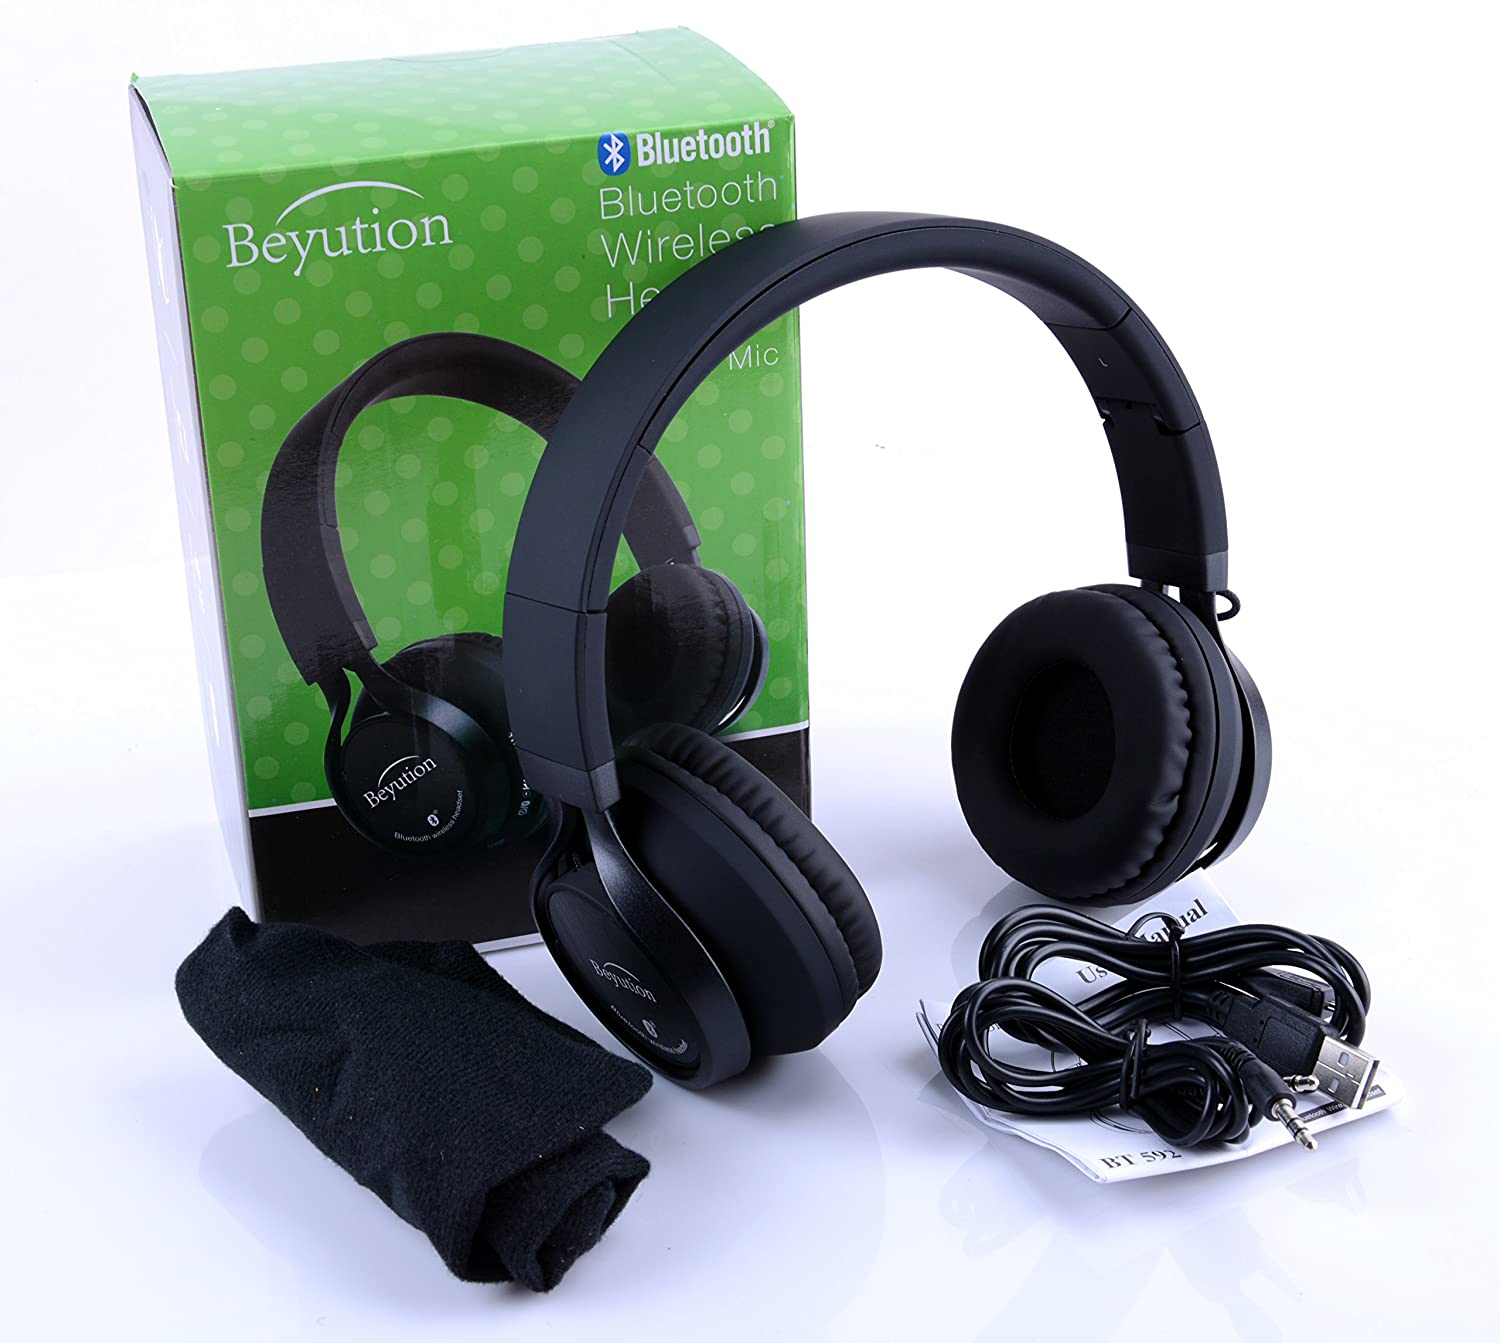 Beyution Metal Bluetooth headphones Hi-Fi Stereo Wireless Bluetooth Headset for Apple iPhone IPad iTouch Mac IPOD SAMSUNG GALAXY S5/S4/S3; Note 2/3/4 LG and all portable devices with bluetooth (BT525)